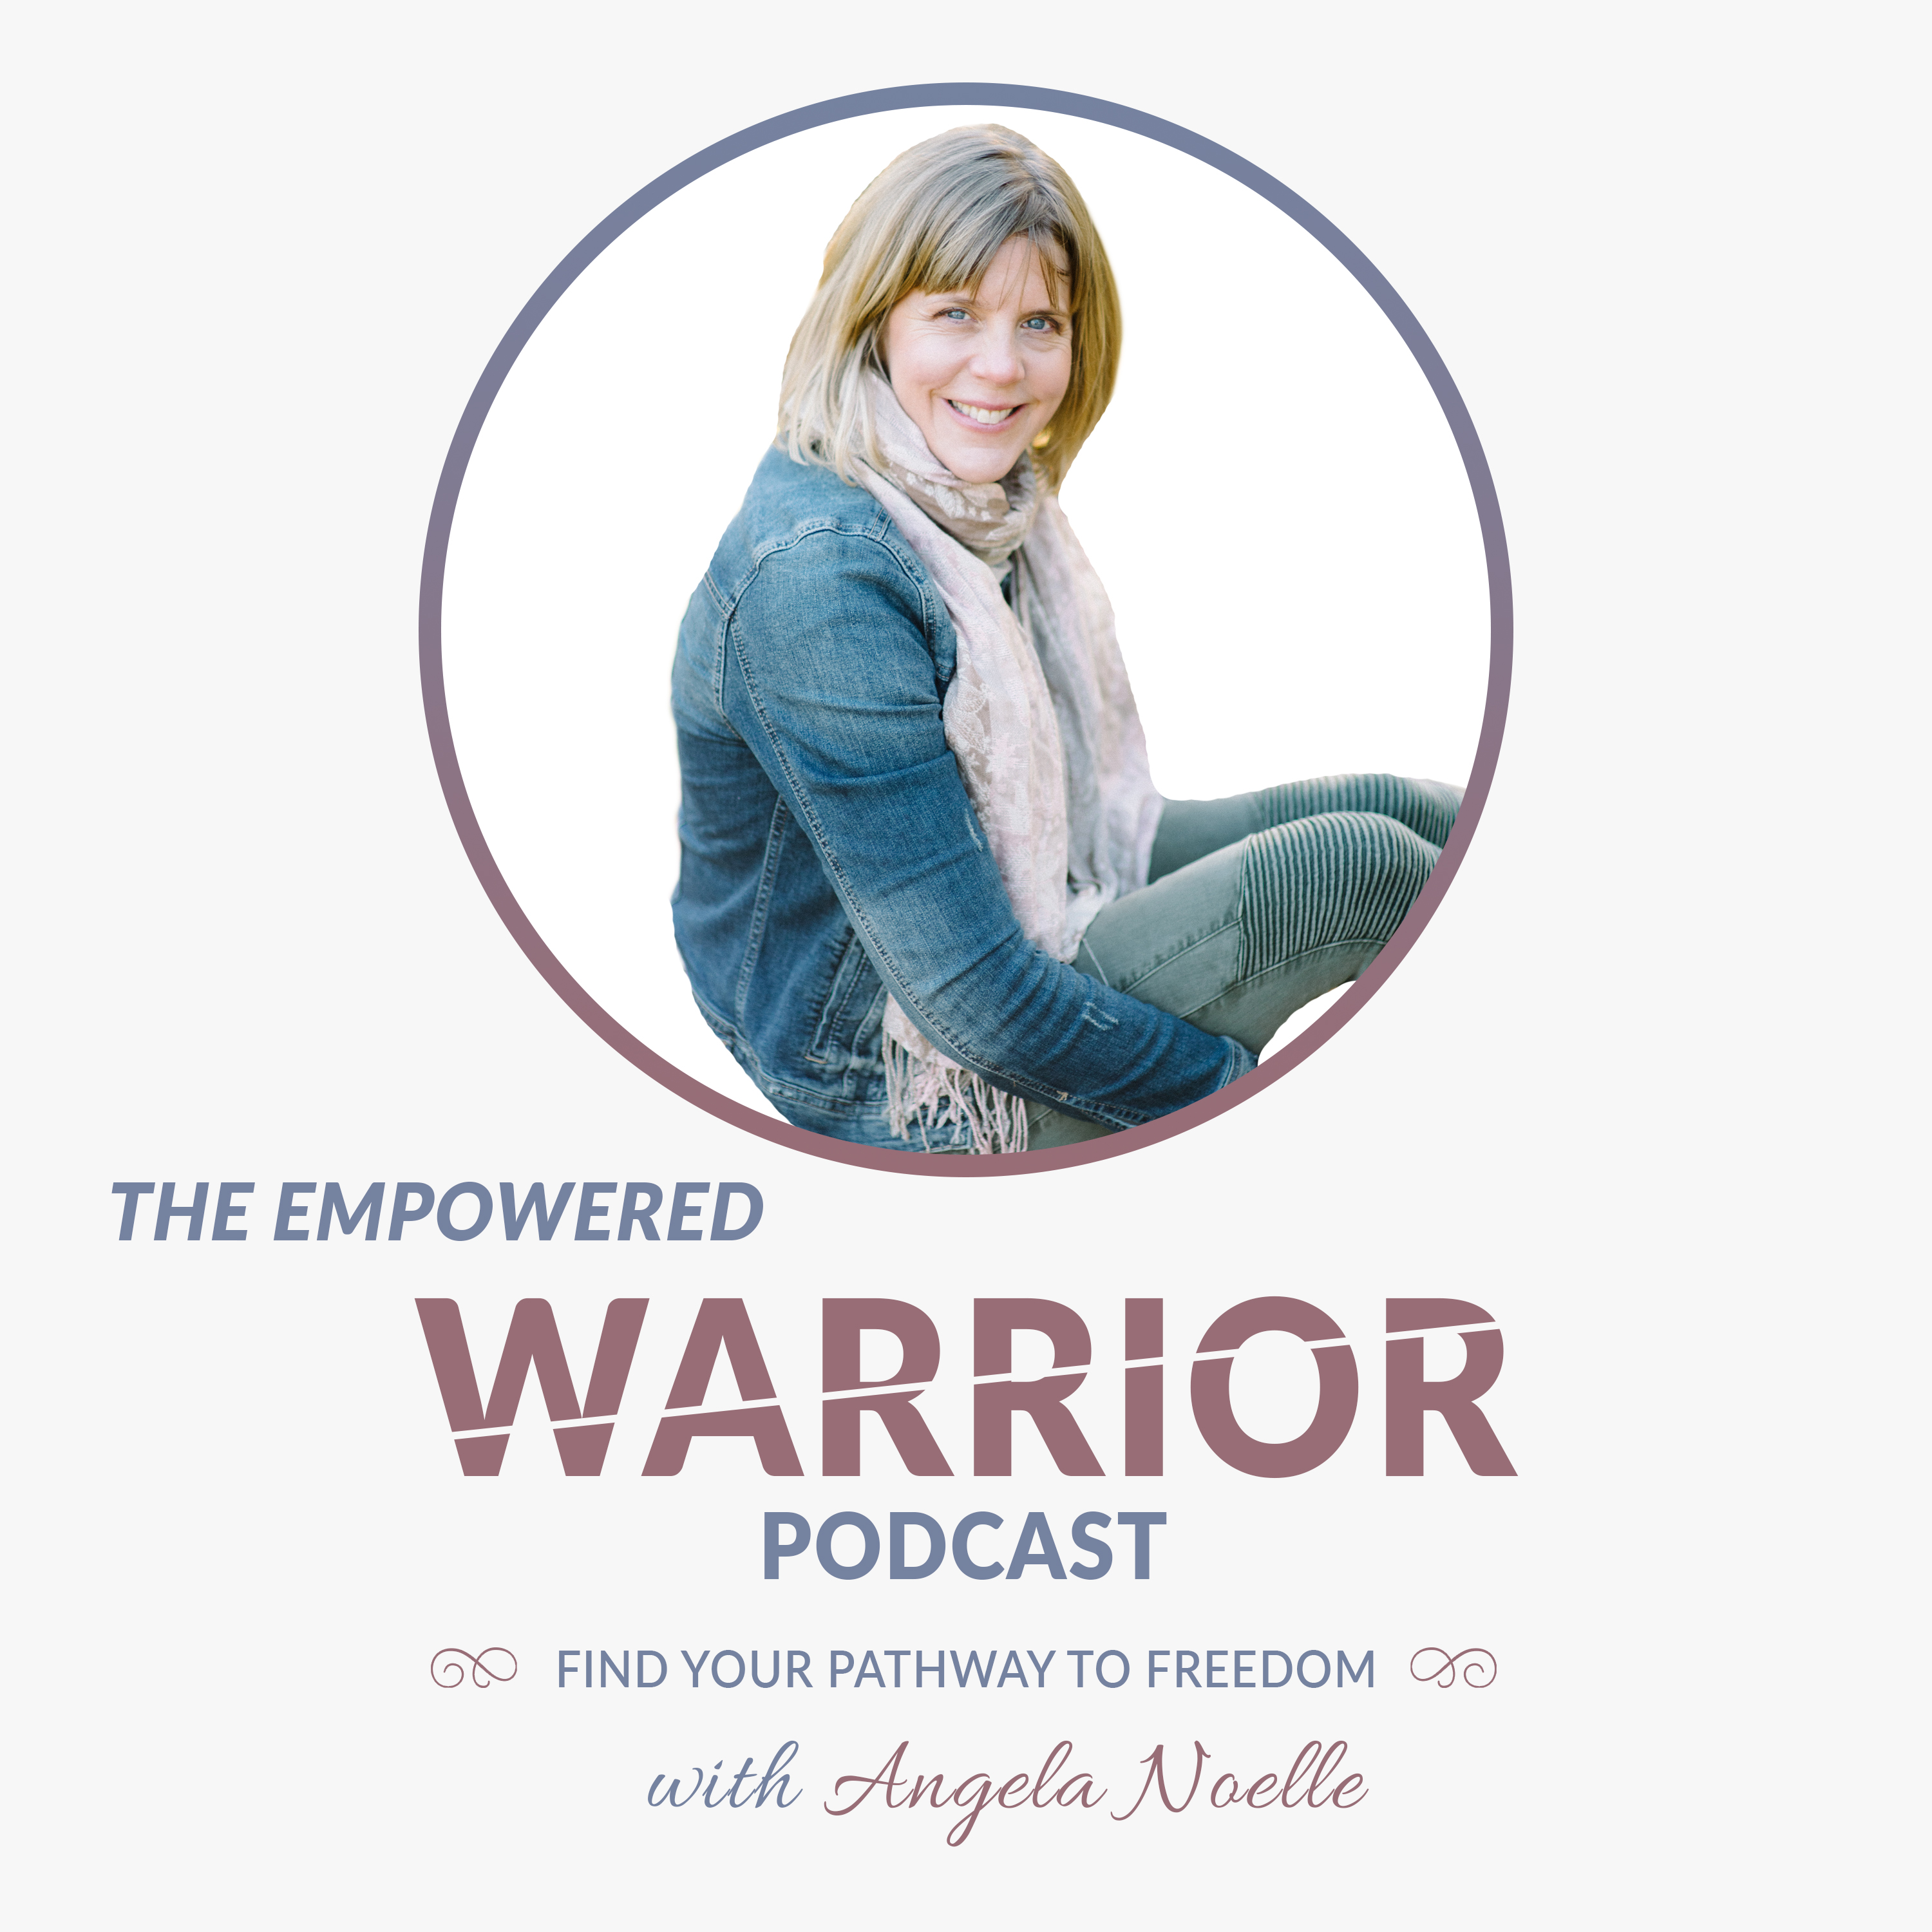 The Empowered Warrior Podcast show art